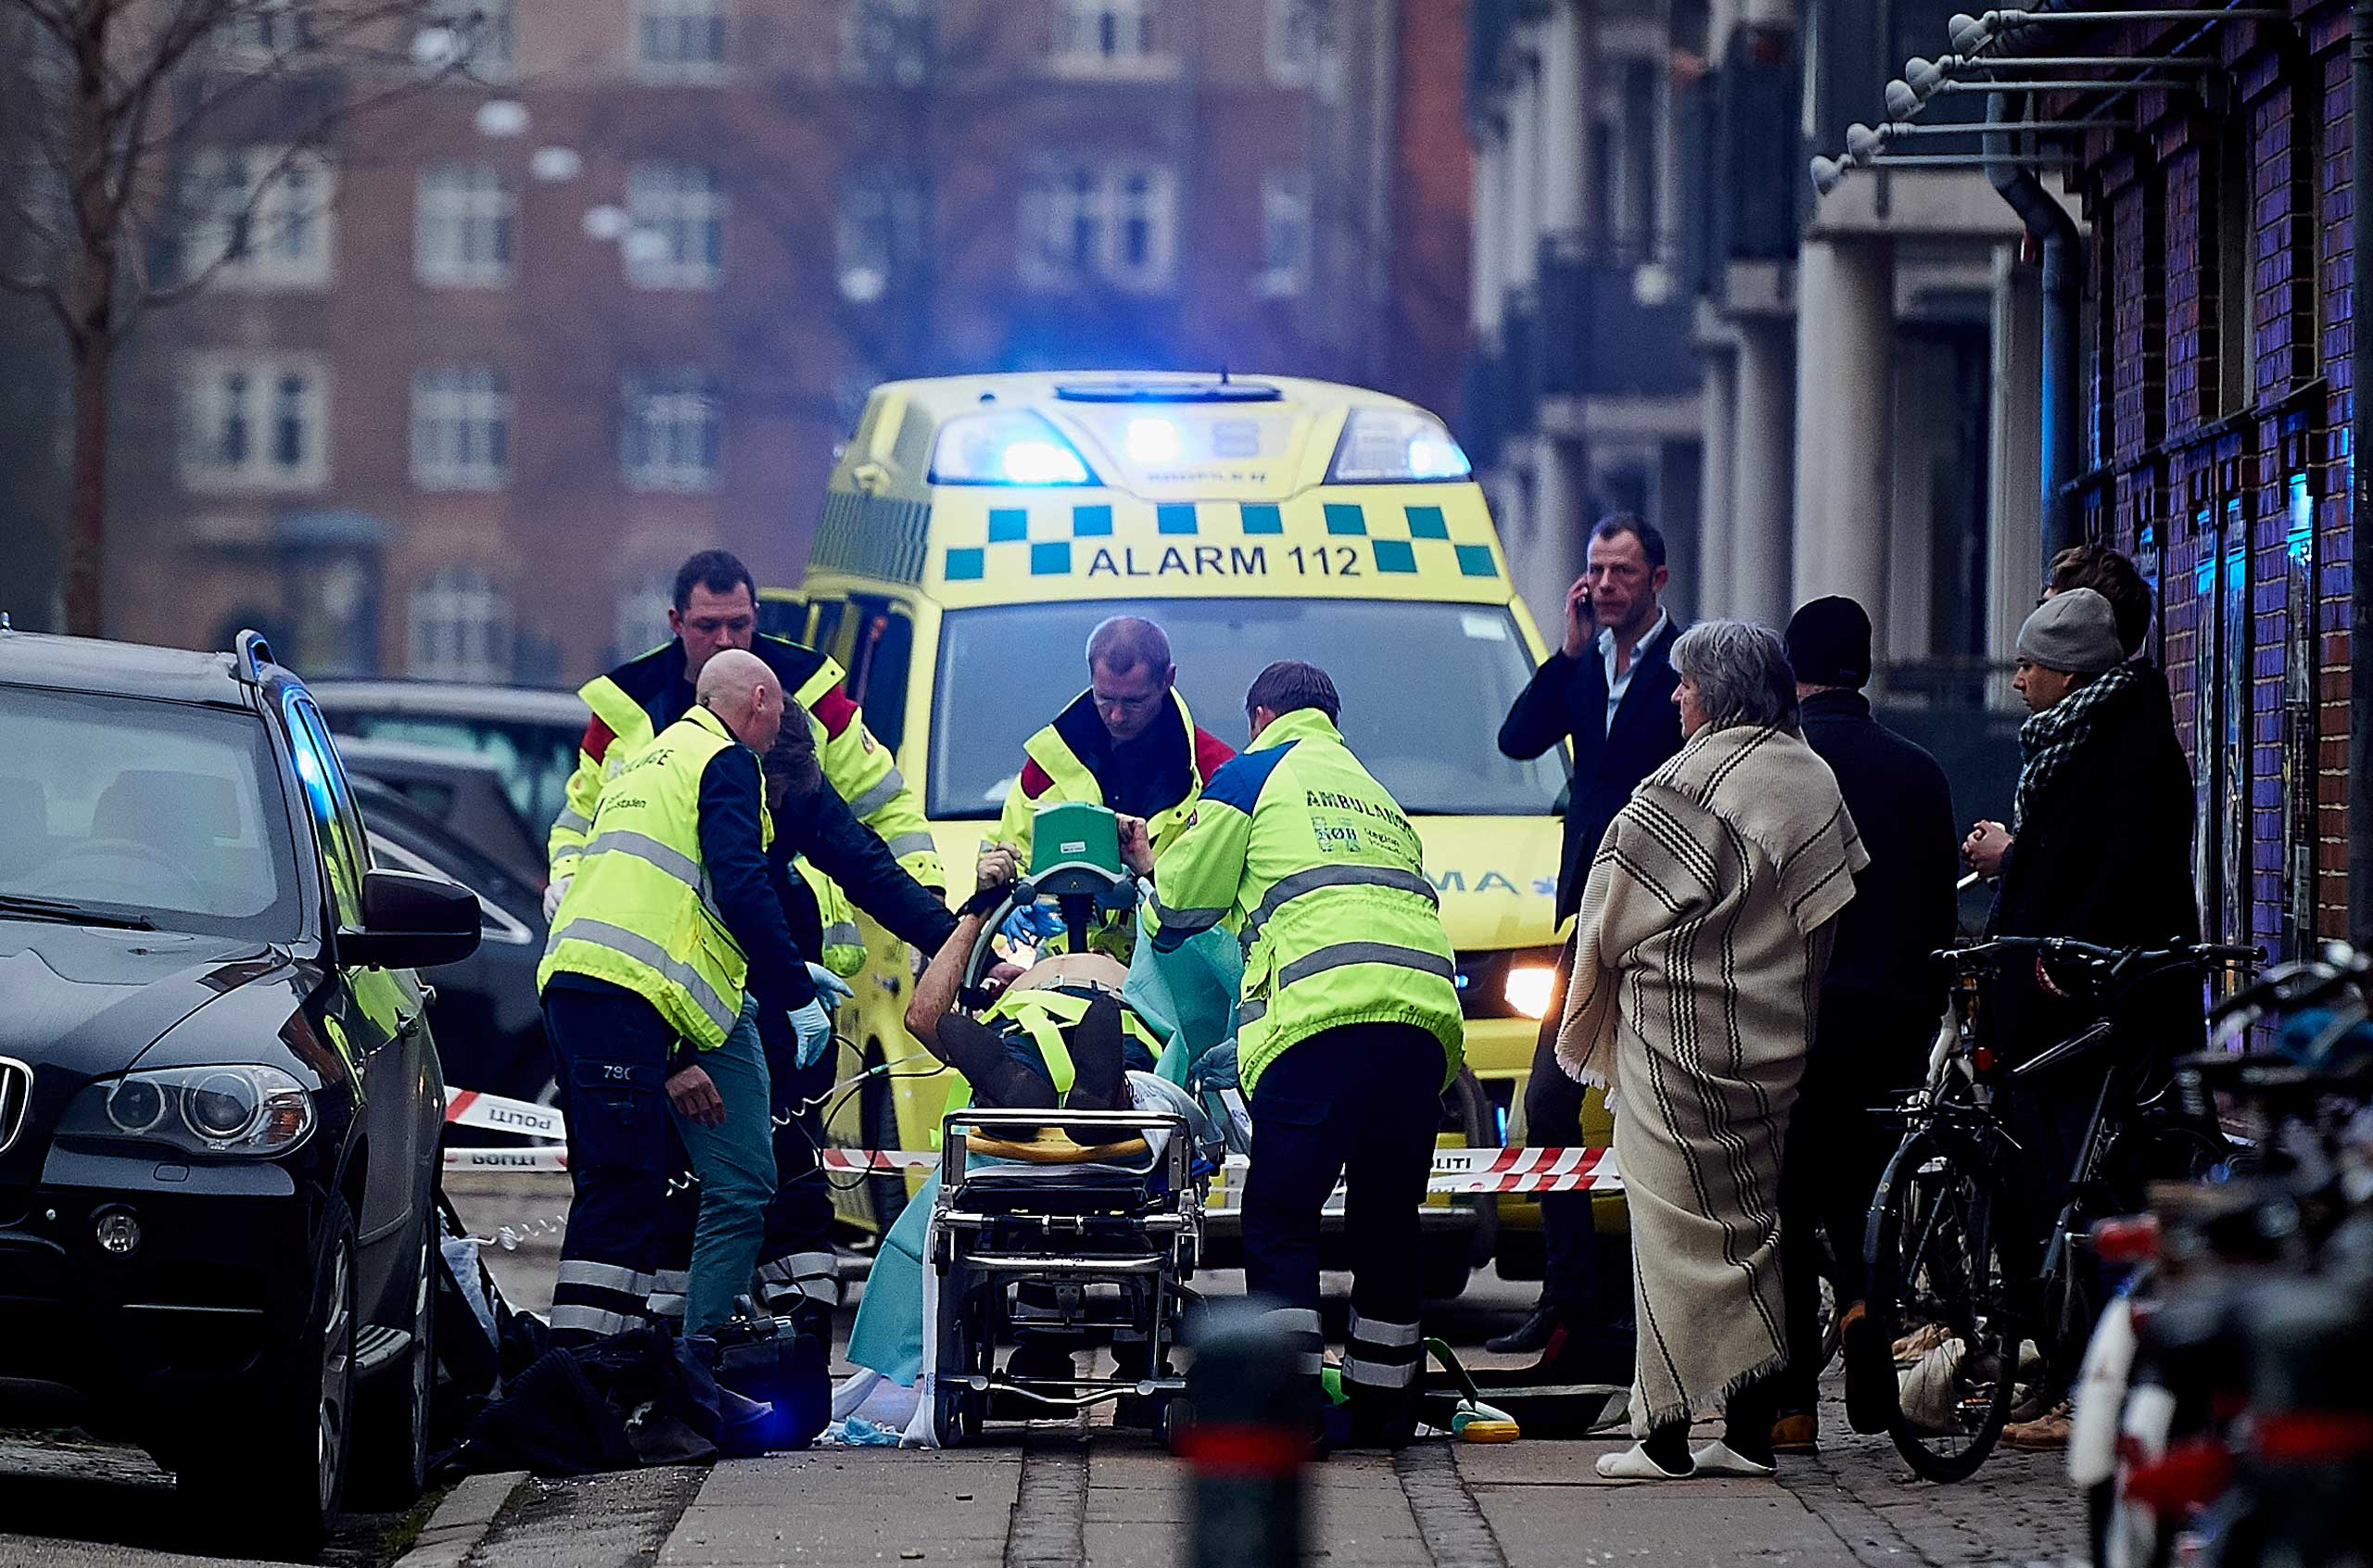 A victim is carried into an ambulance after a shooting at a public meeting and discussion arranged by the Lars Vilks Committee about Charlie Hebdo and freedom of speech on Feb. 14, 2015 in Copenhagen.